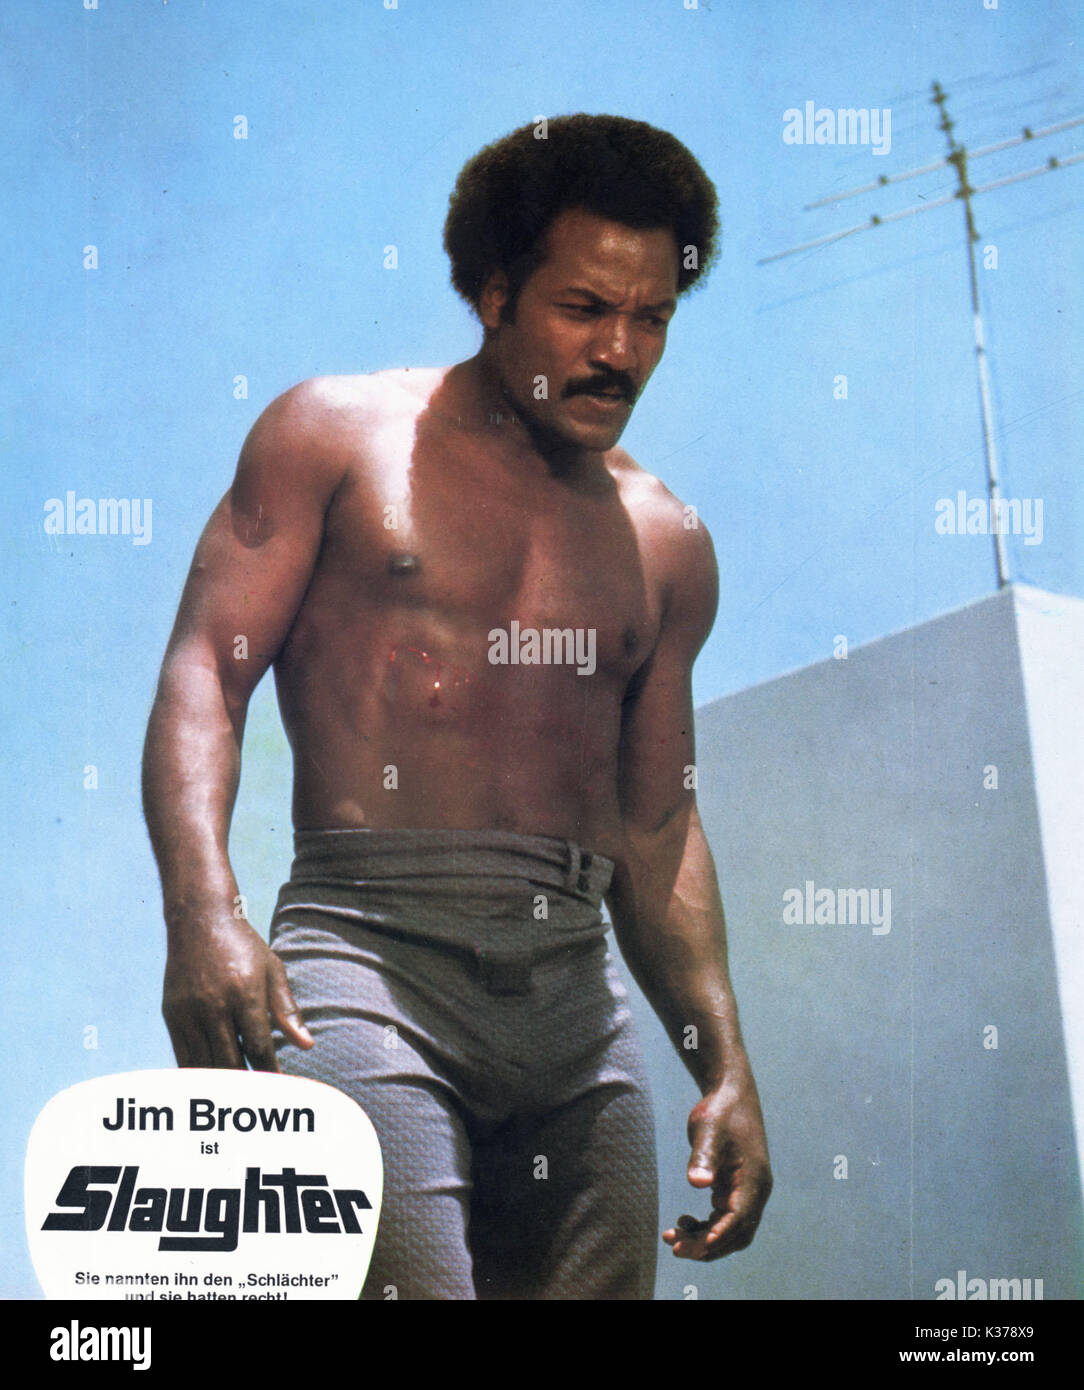 Jim Brown Slaughter >> Slaughter Jim Brown Date 1972 Stock Photo 156897953 Alamy